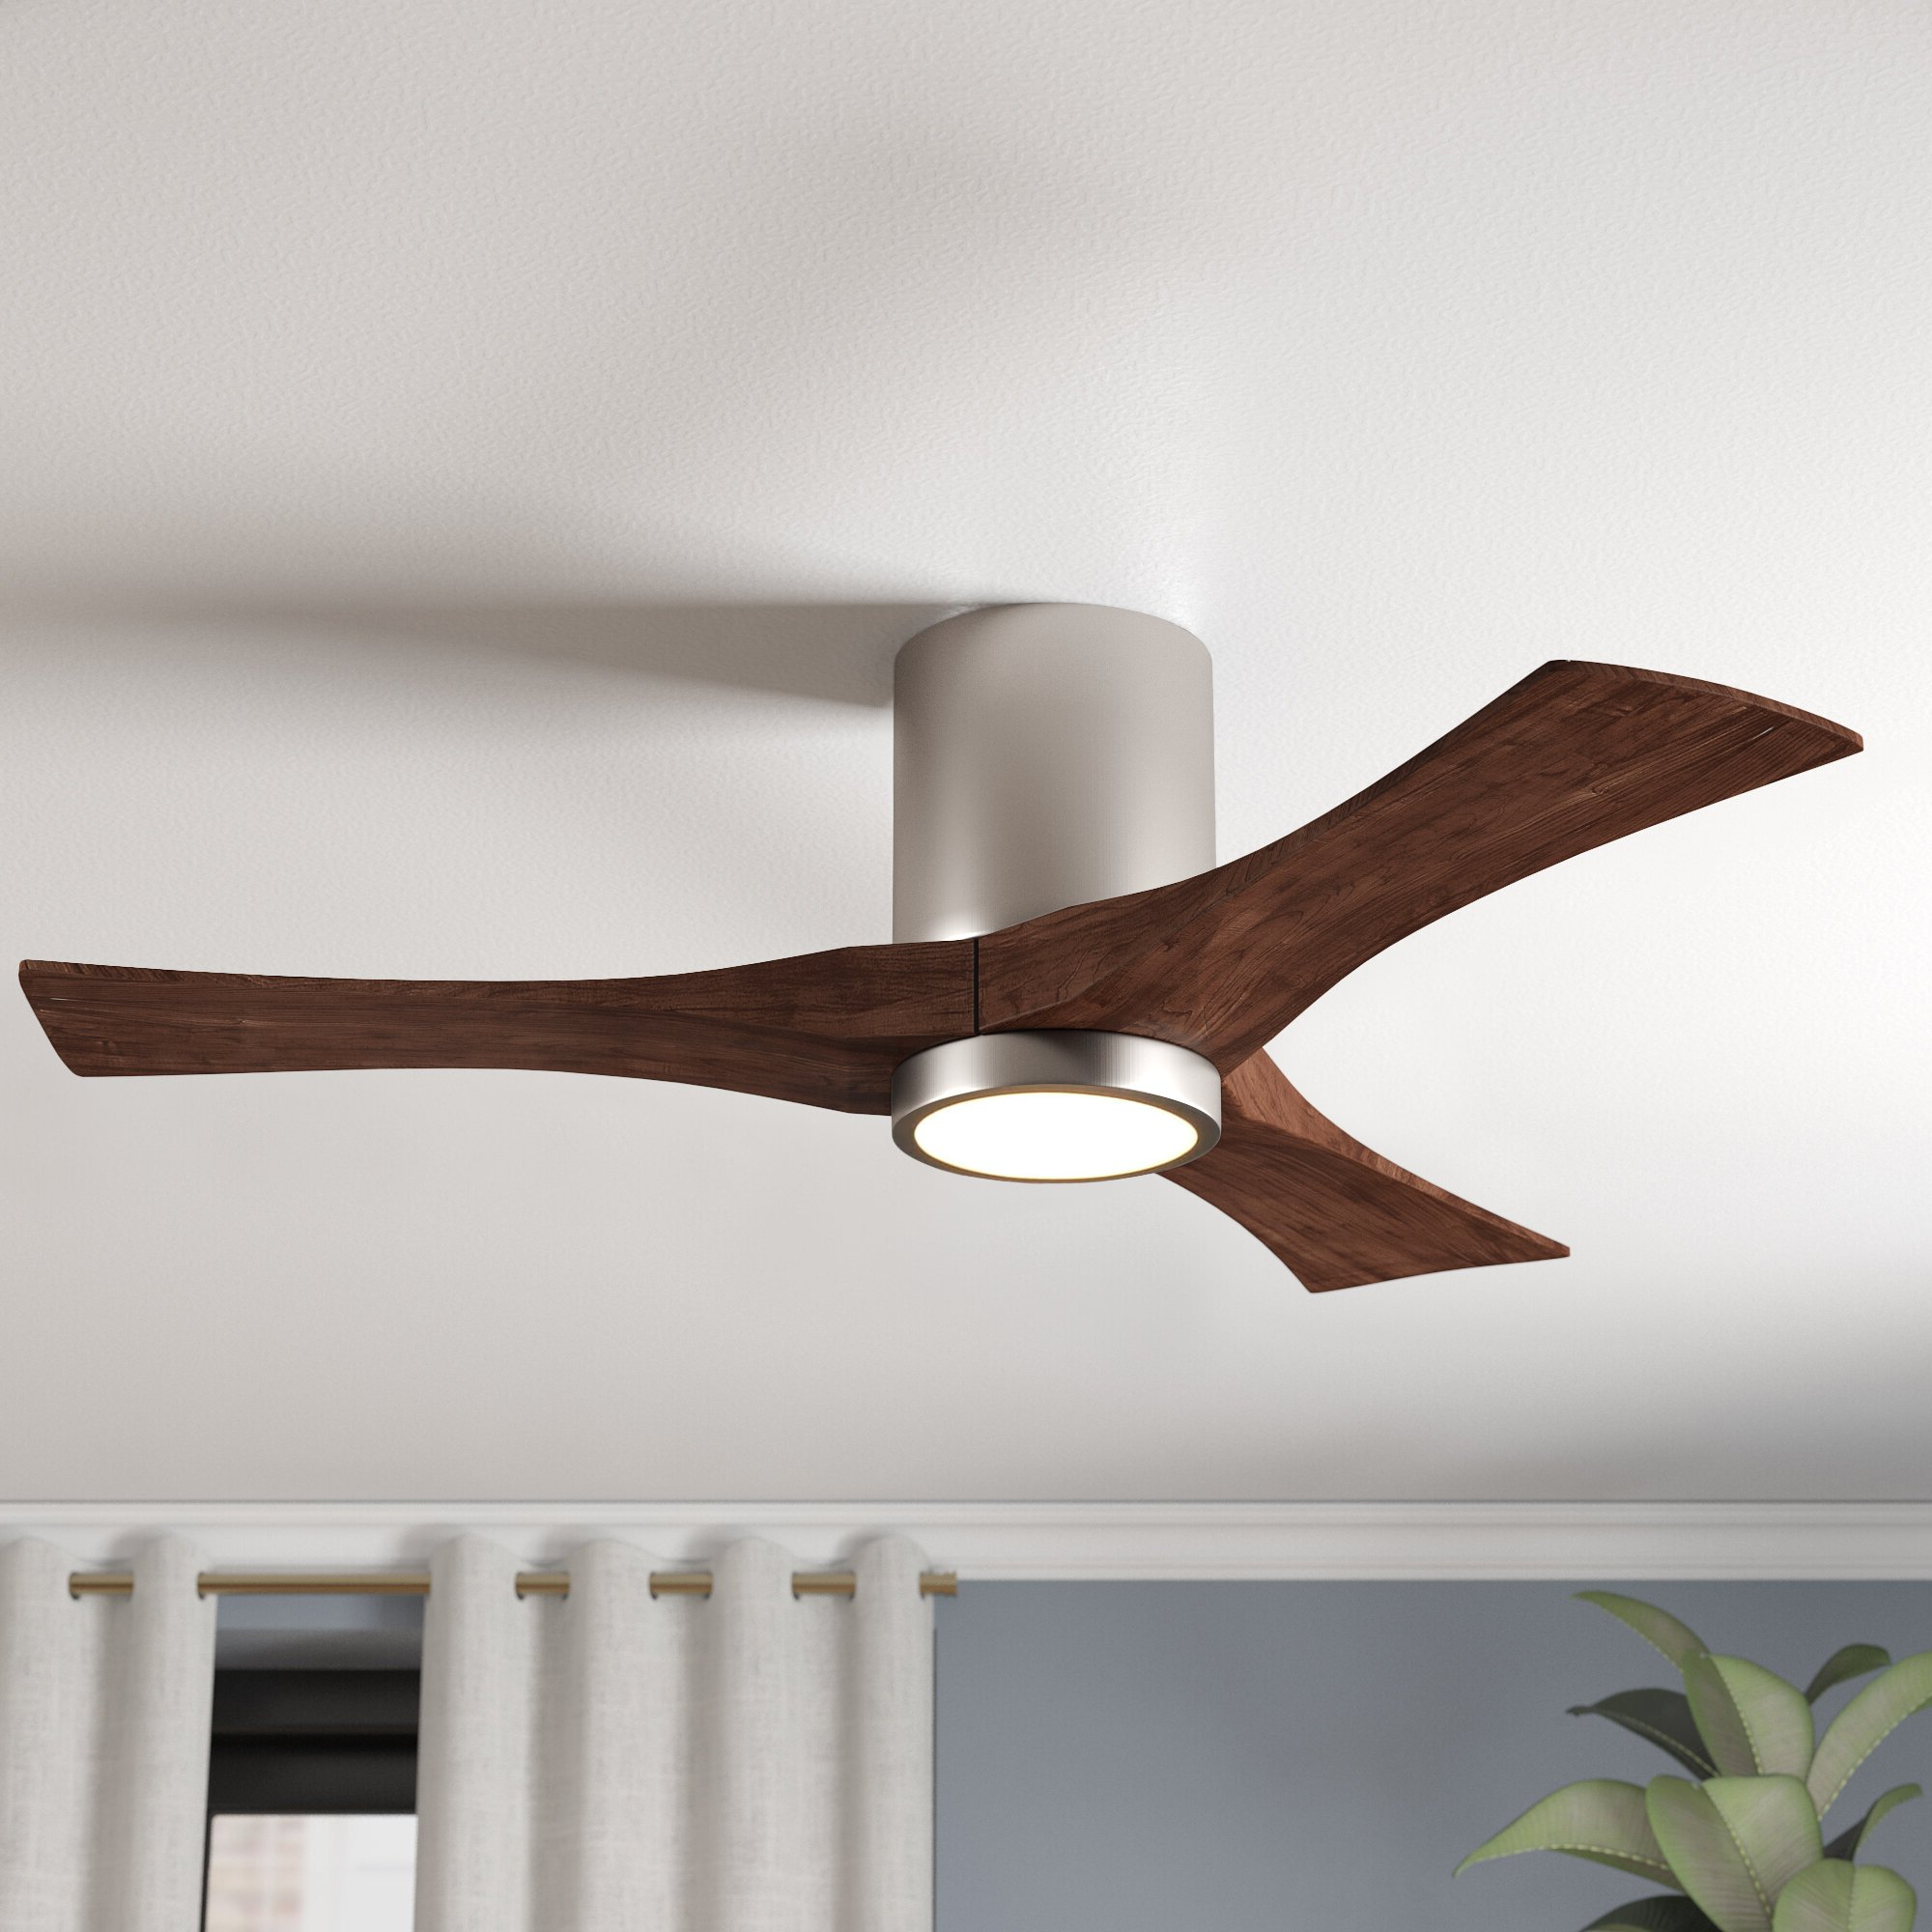 Fashionable Fredericksen 5 Blade Ceiling Fans Regarding 62 Inch Ceiling Fan You'll Love In (View 8 of 20)